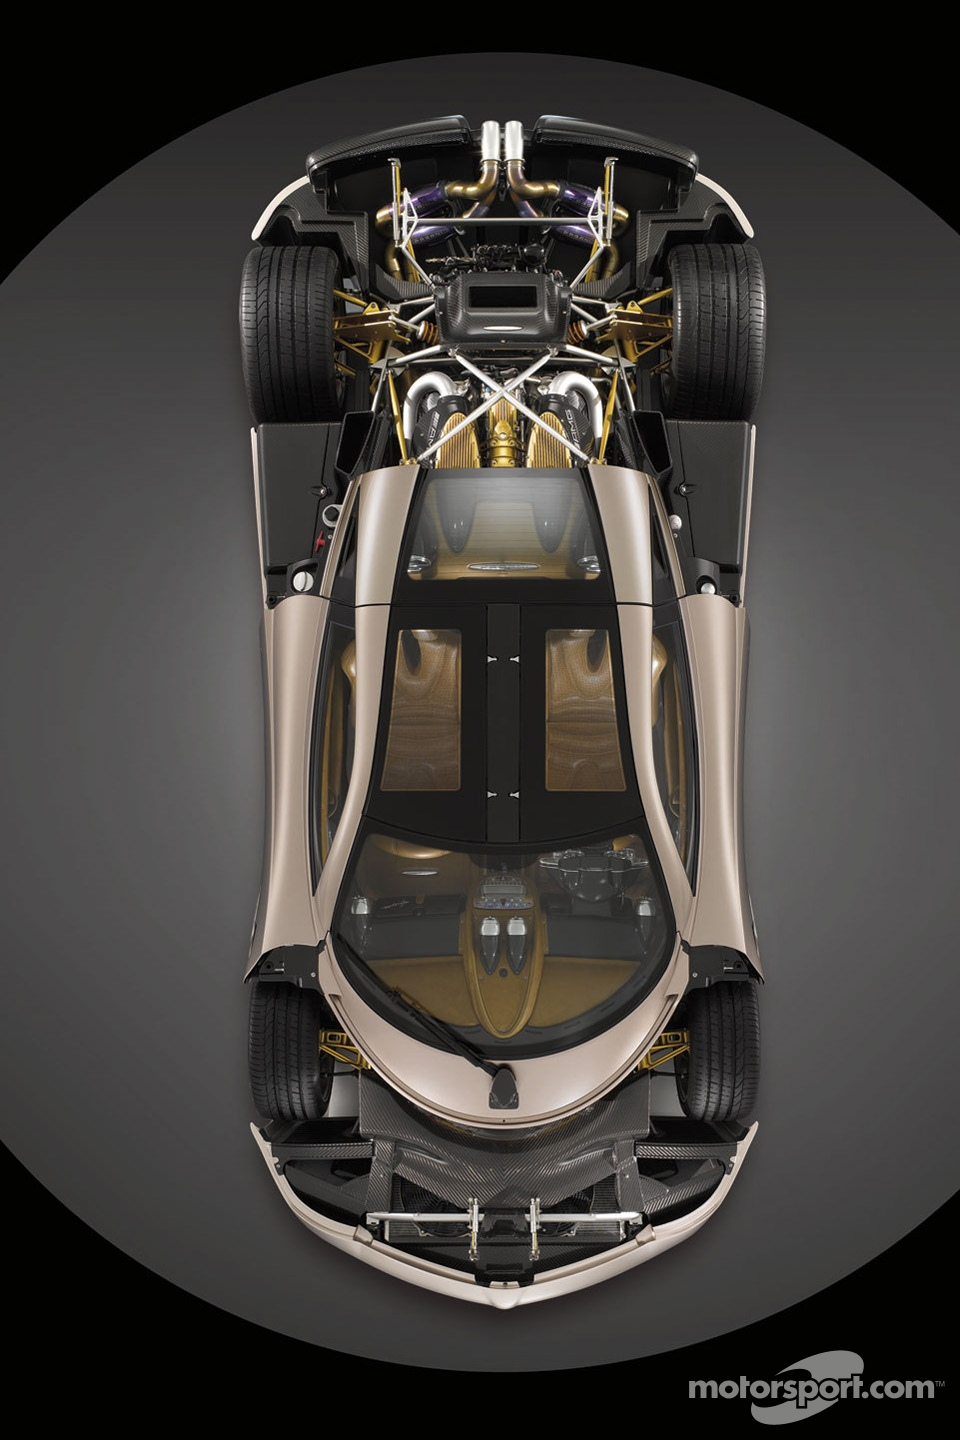 The Pagani Huarya